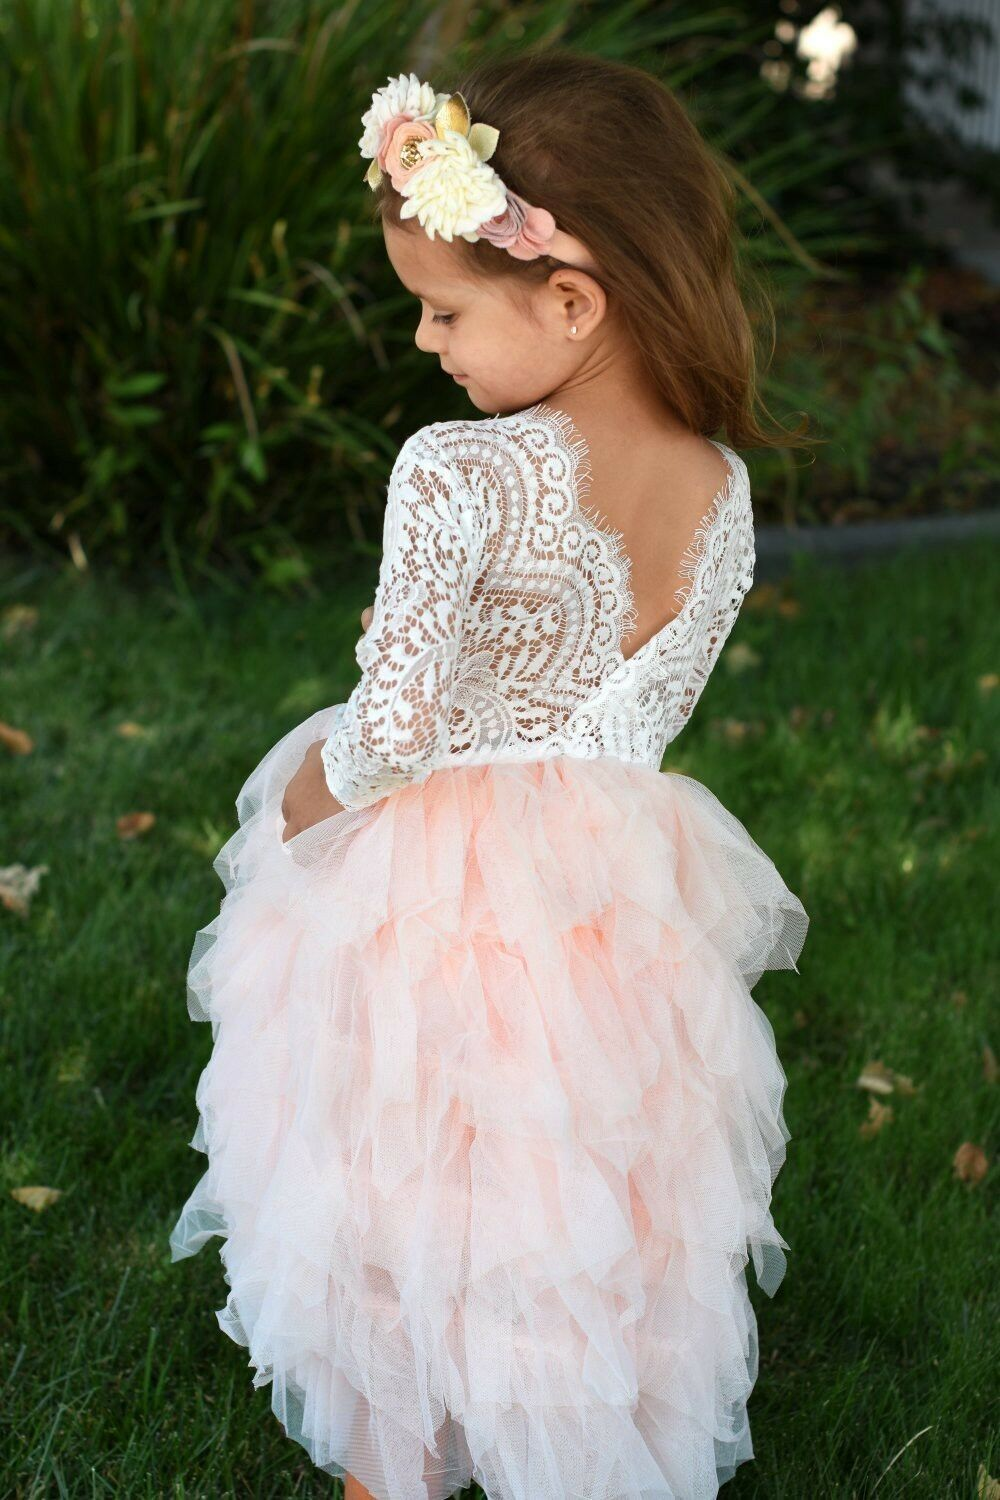 Details About Beautiful Girls Full Length Pink Peach Lace Tulle Layered Tutu Flower Girl Dress